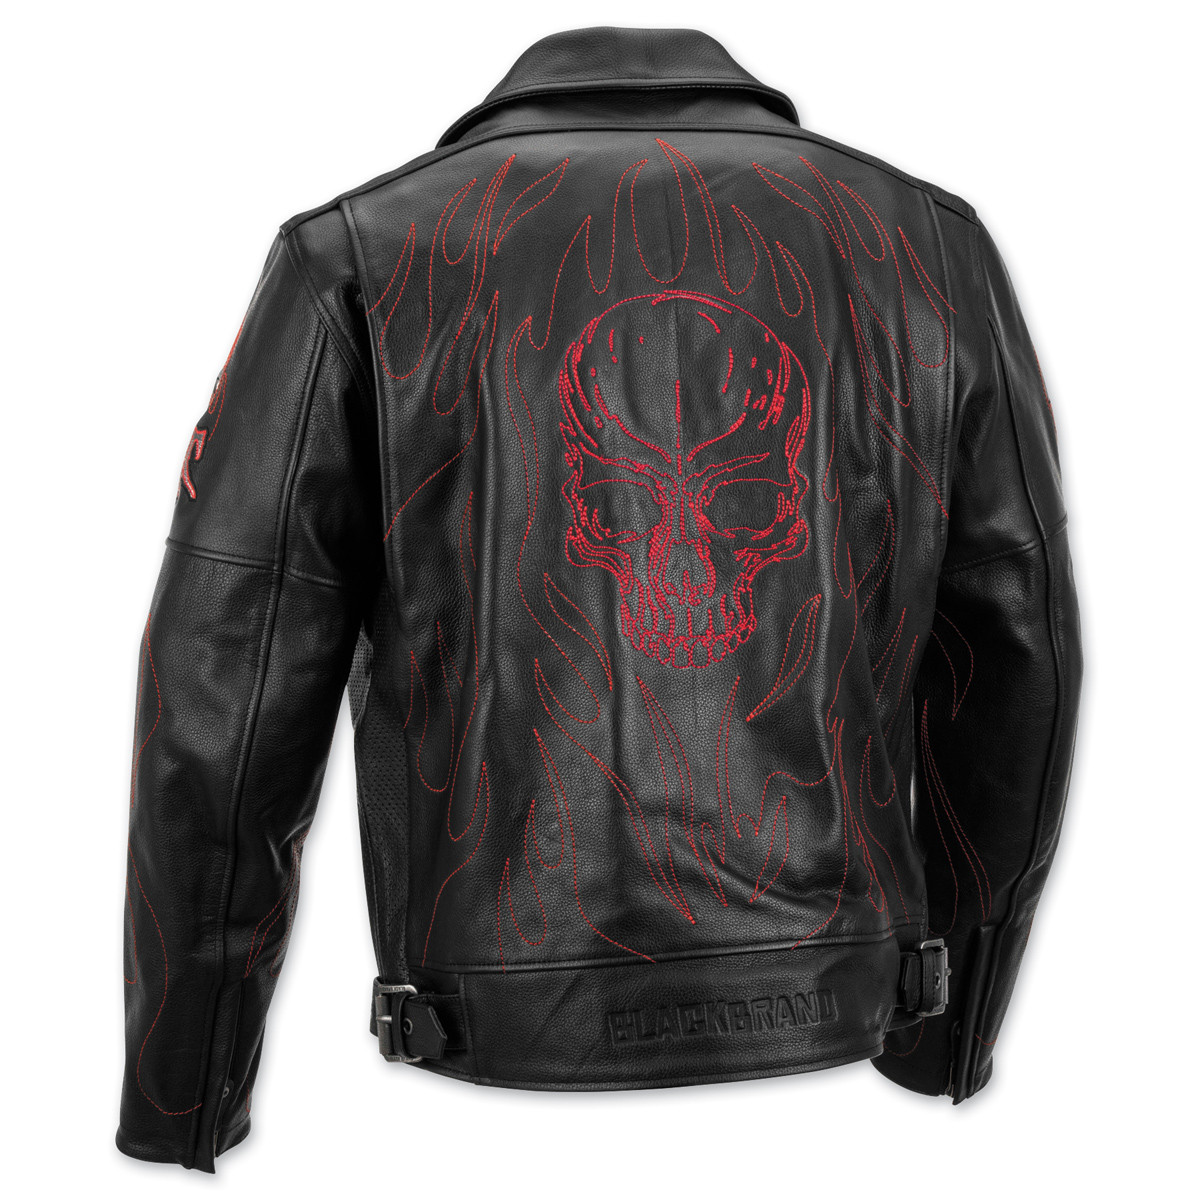 07120c8bd6b36 Black Brand Spontaneous Human Combustion Jacket - Motorcycle House